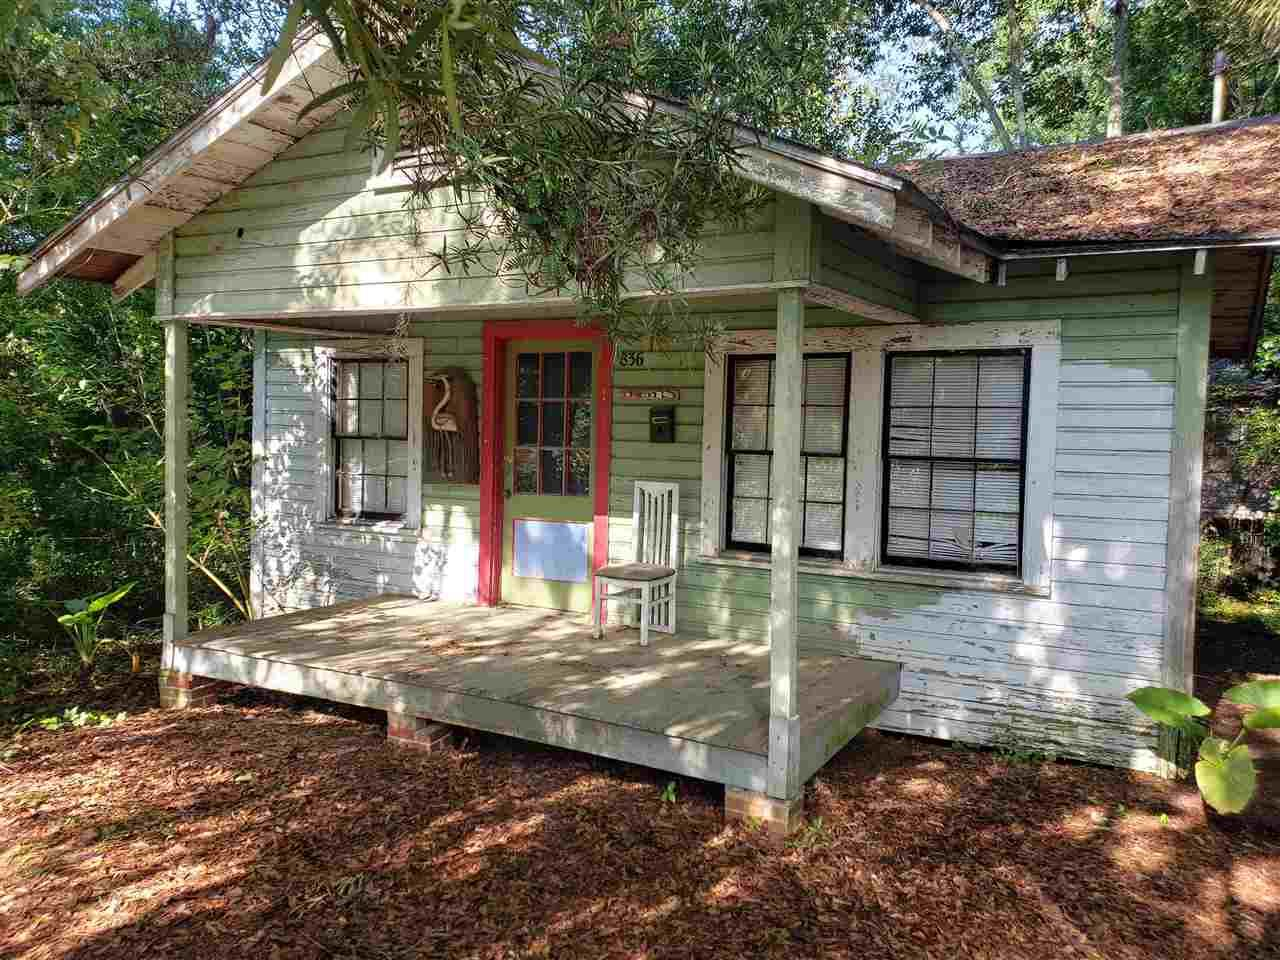 Photo of 836 N BRONOUGH Street, TALLAHASSEE, FL 32303 (MLS # 331090)